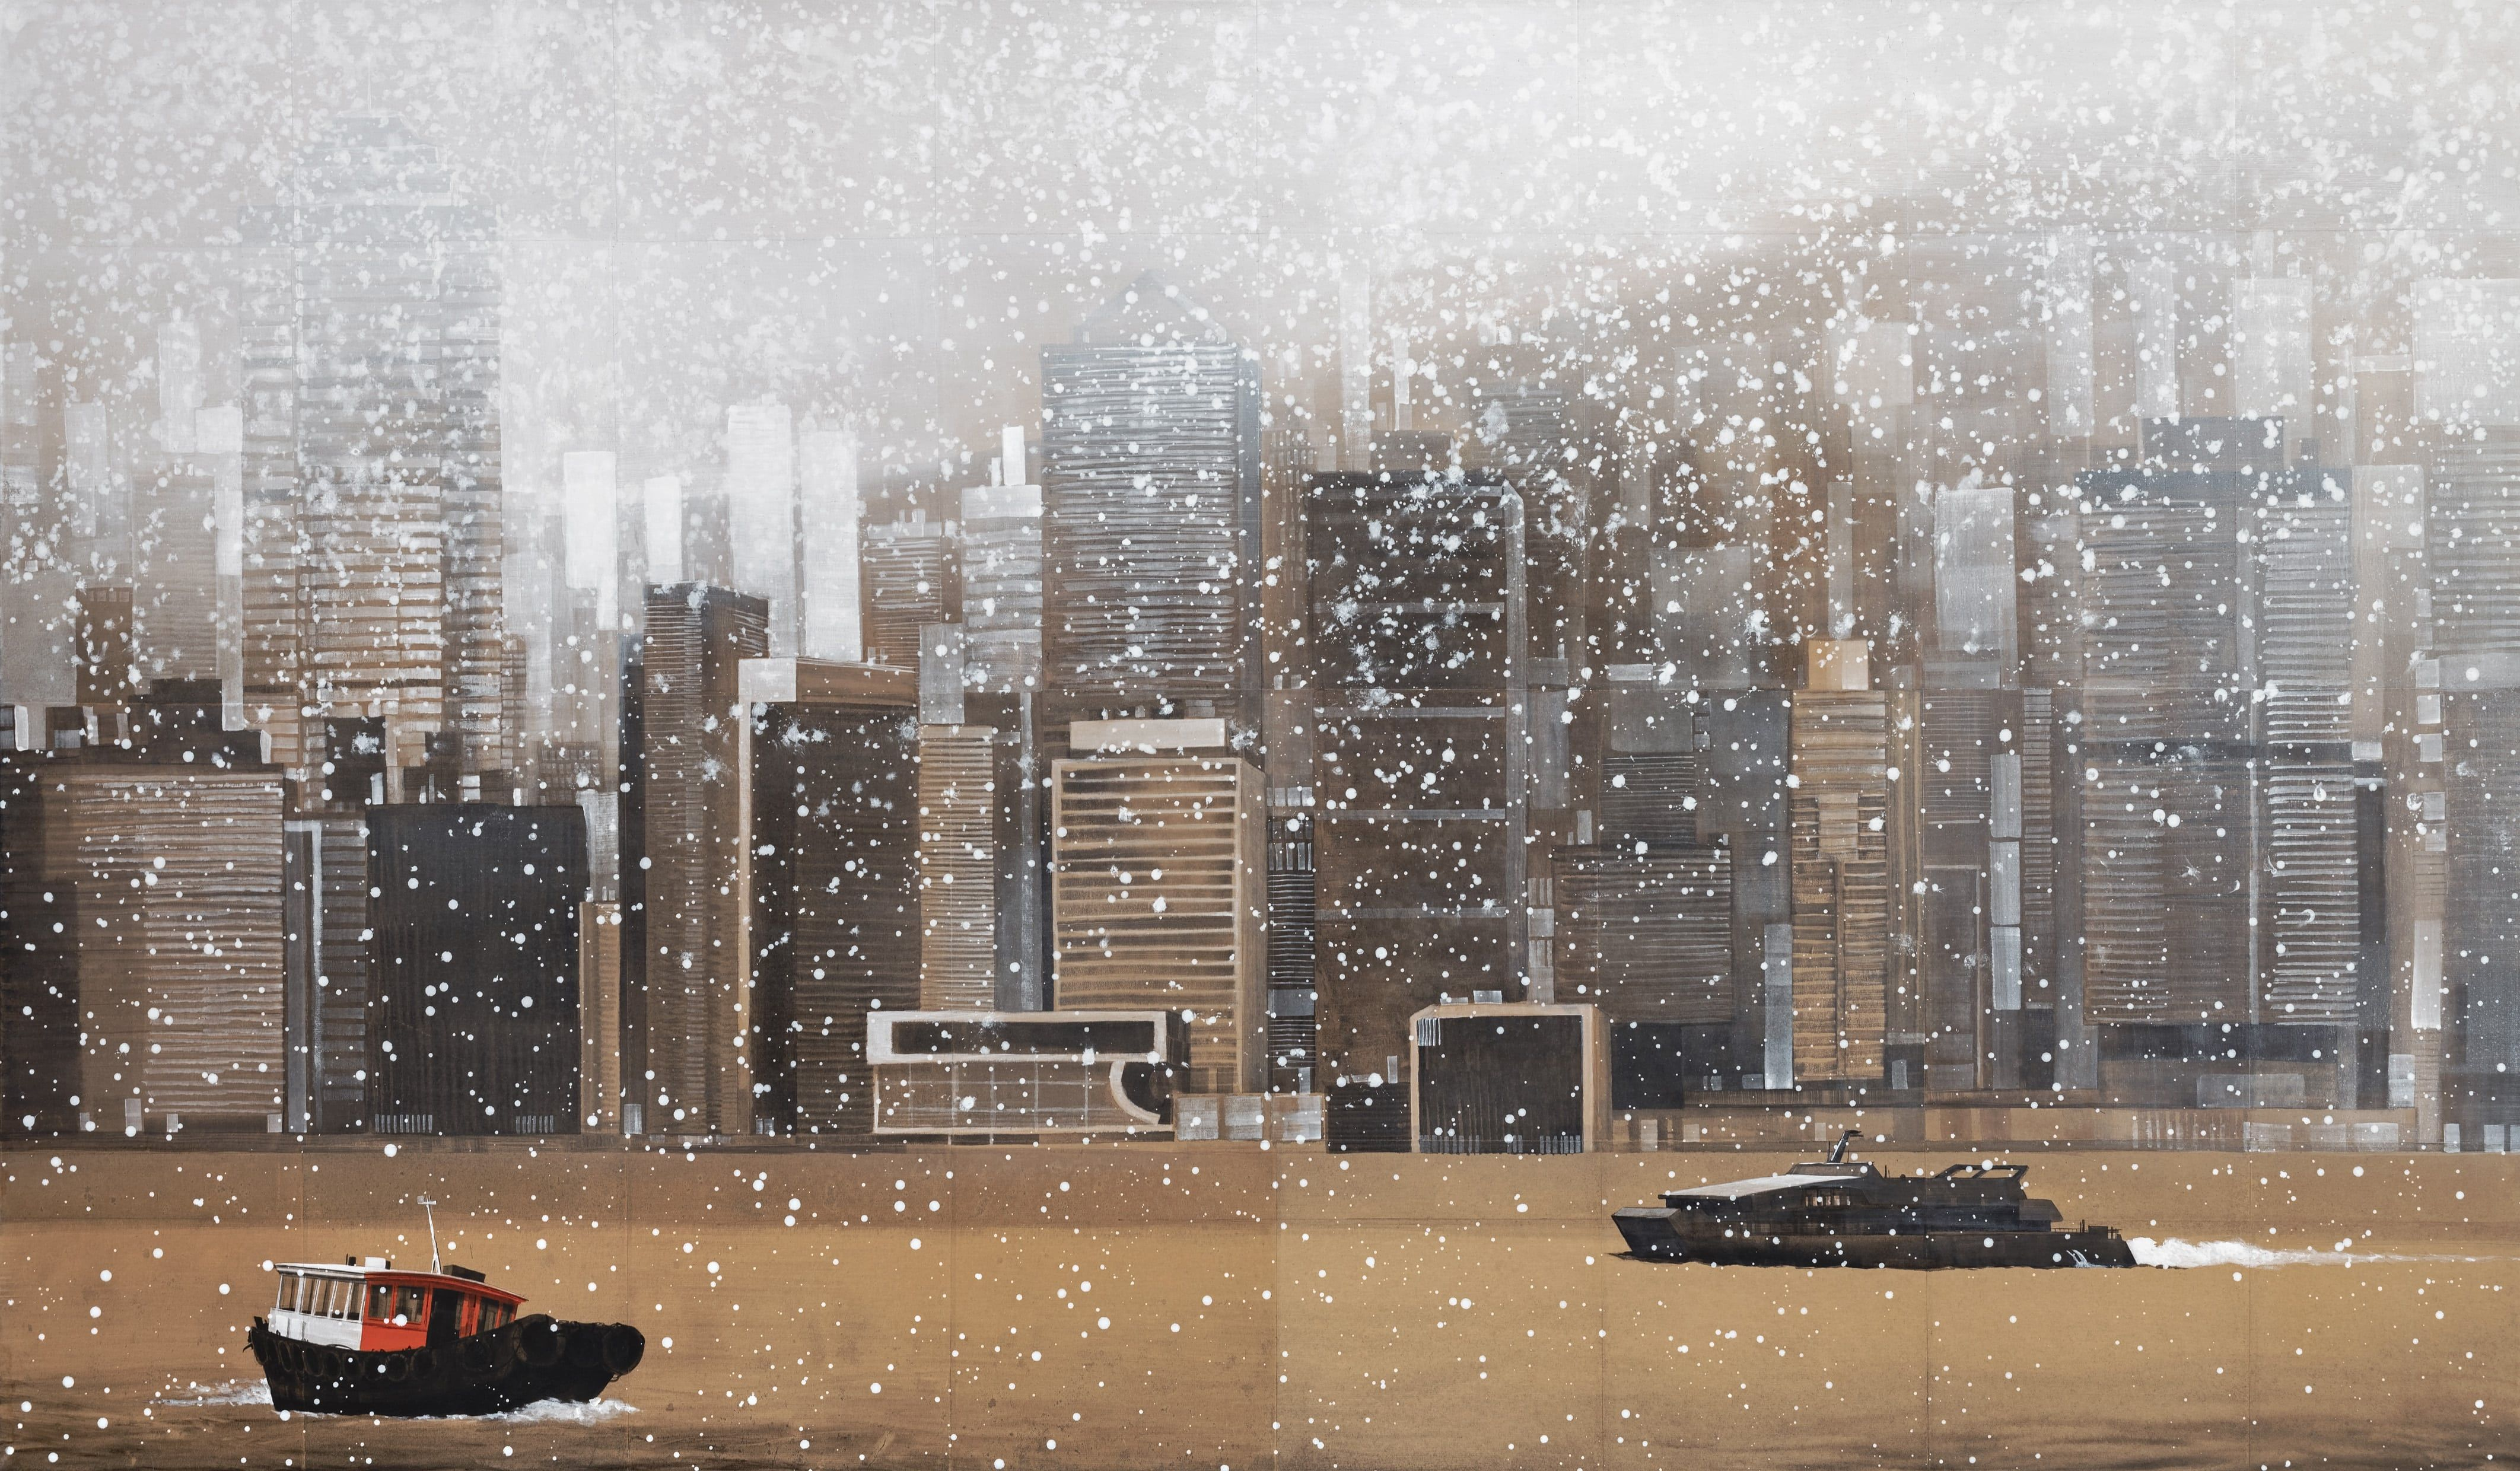 HK Bay,Guillaume Chansarel,Peinture contemporaine